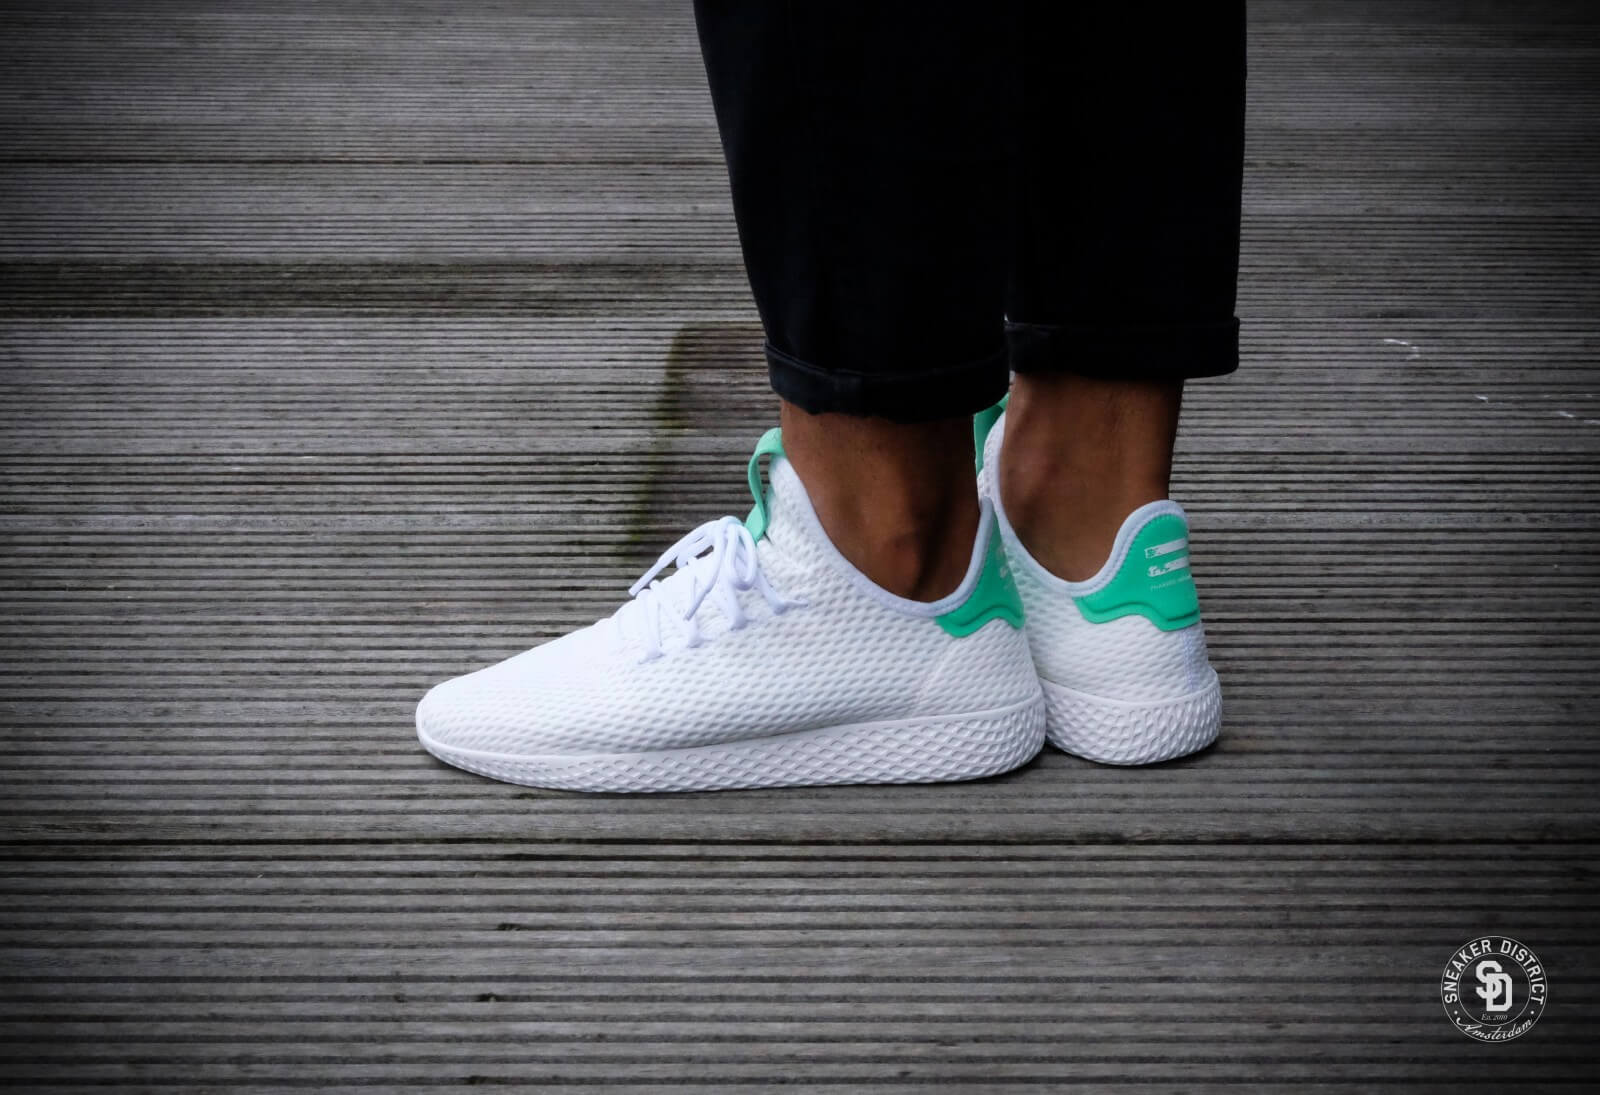 Adidas X Pharrell Williams Tennis Hu White Green By8717